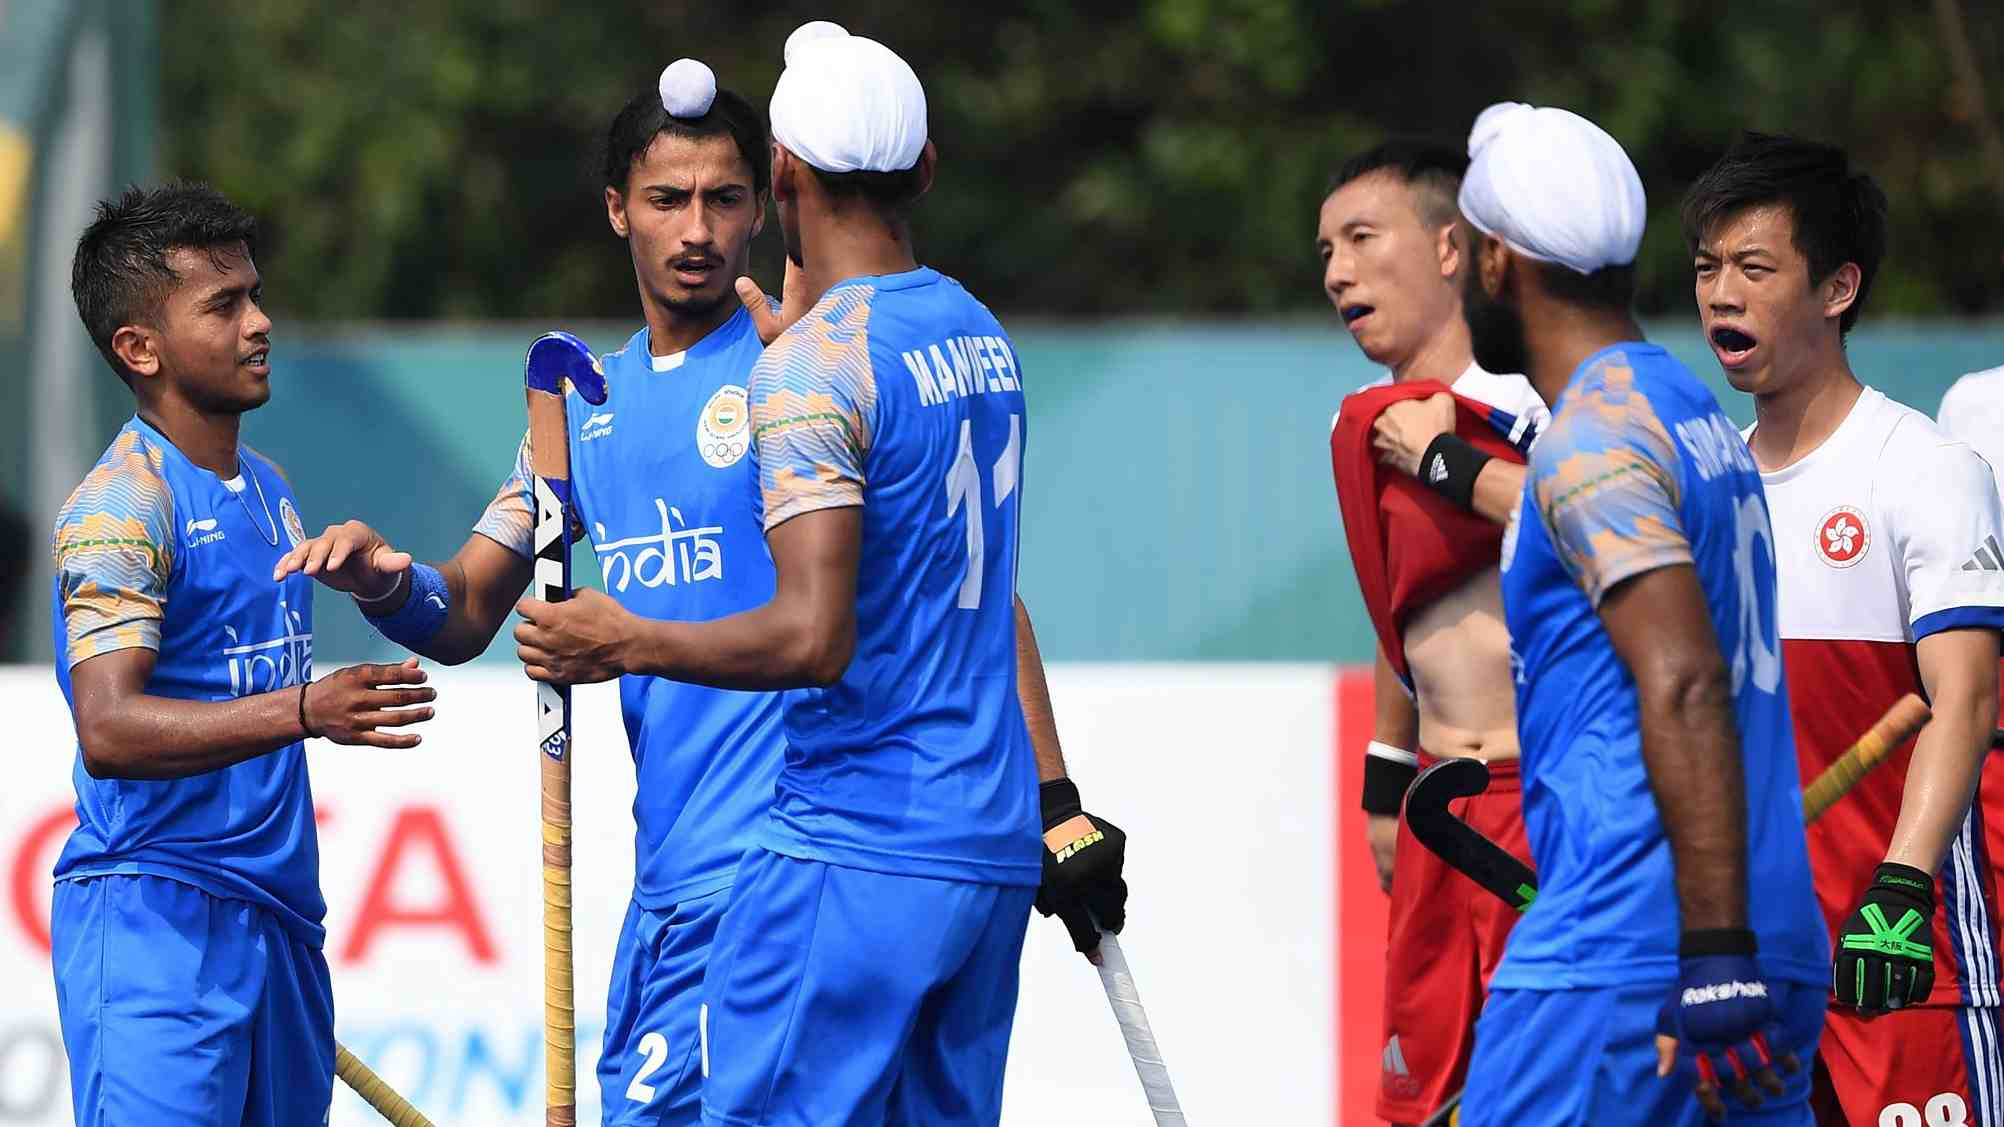 aeb3b6e21be India players celebrate after scoring a goal during the men s field hockey  pool A match with Hong Kong at the 2018 Asian Games in Jakarta